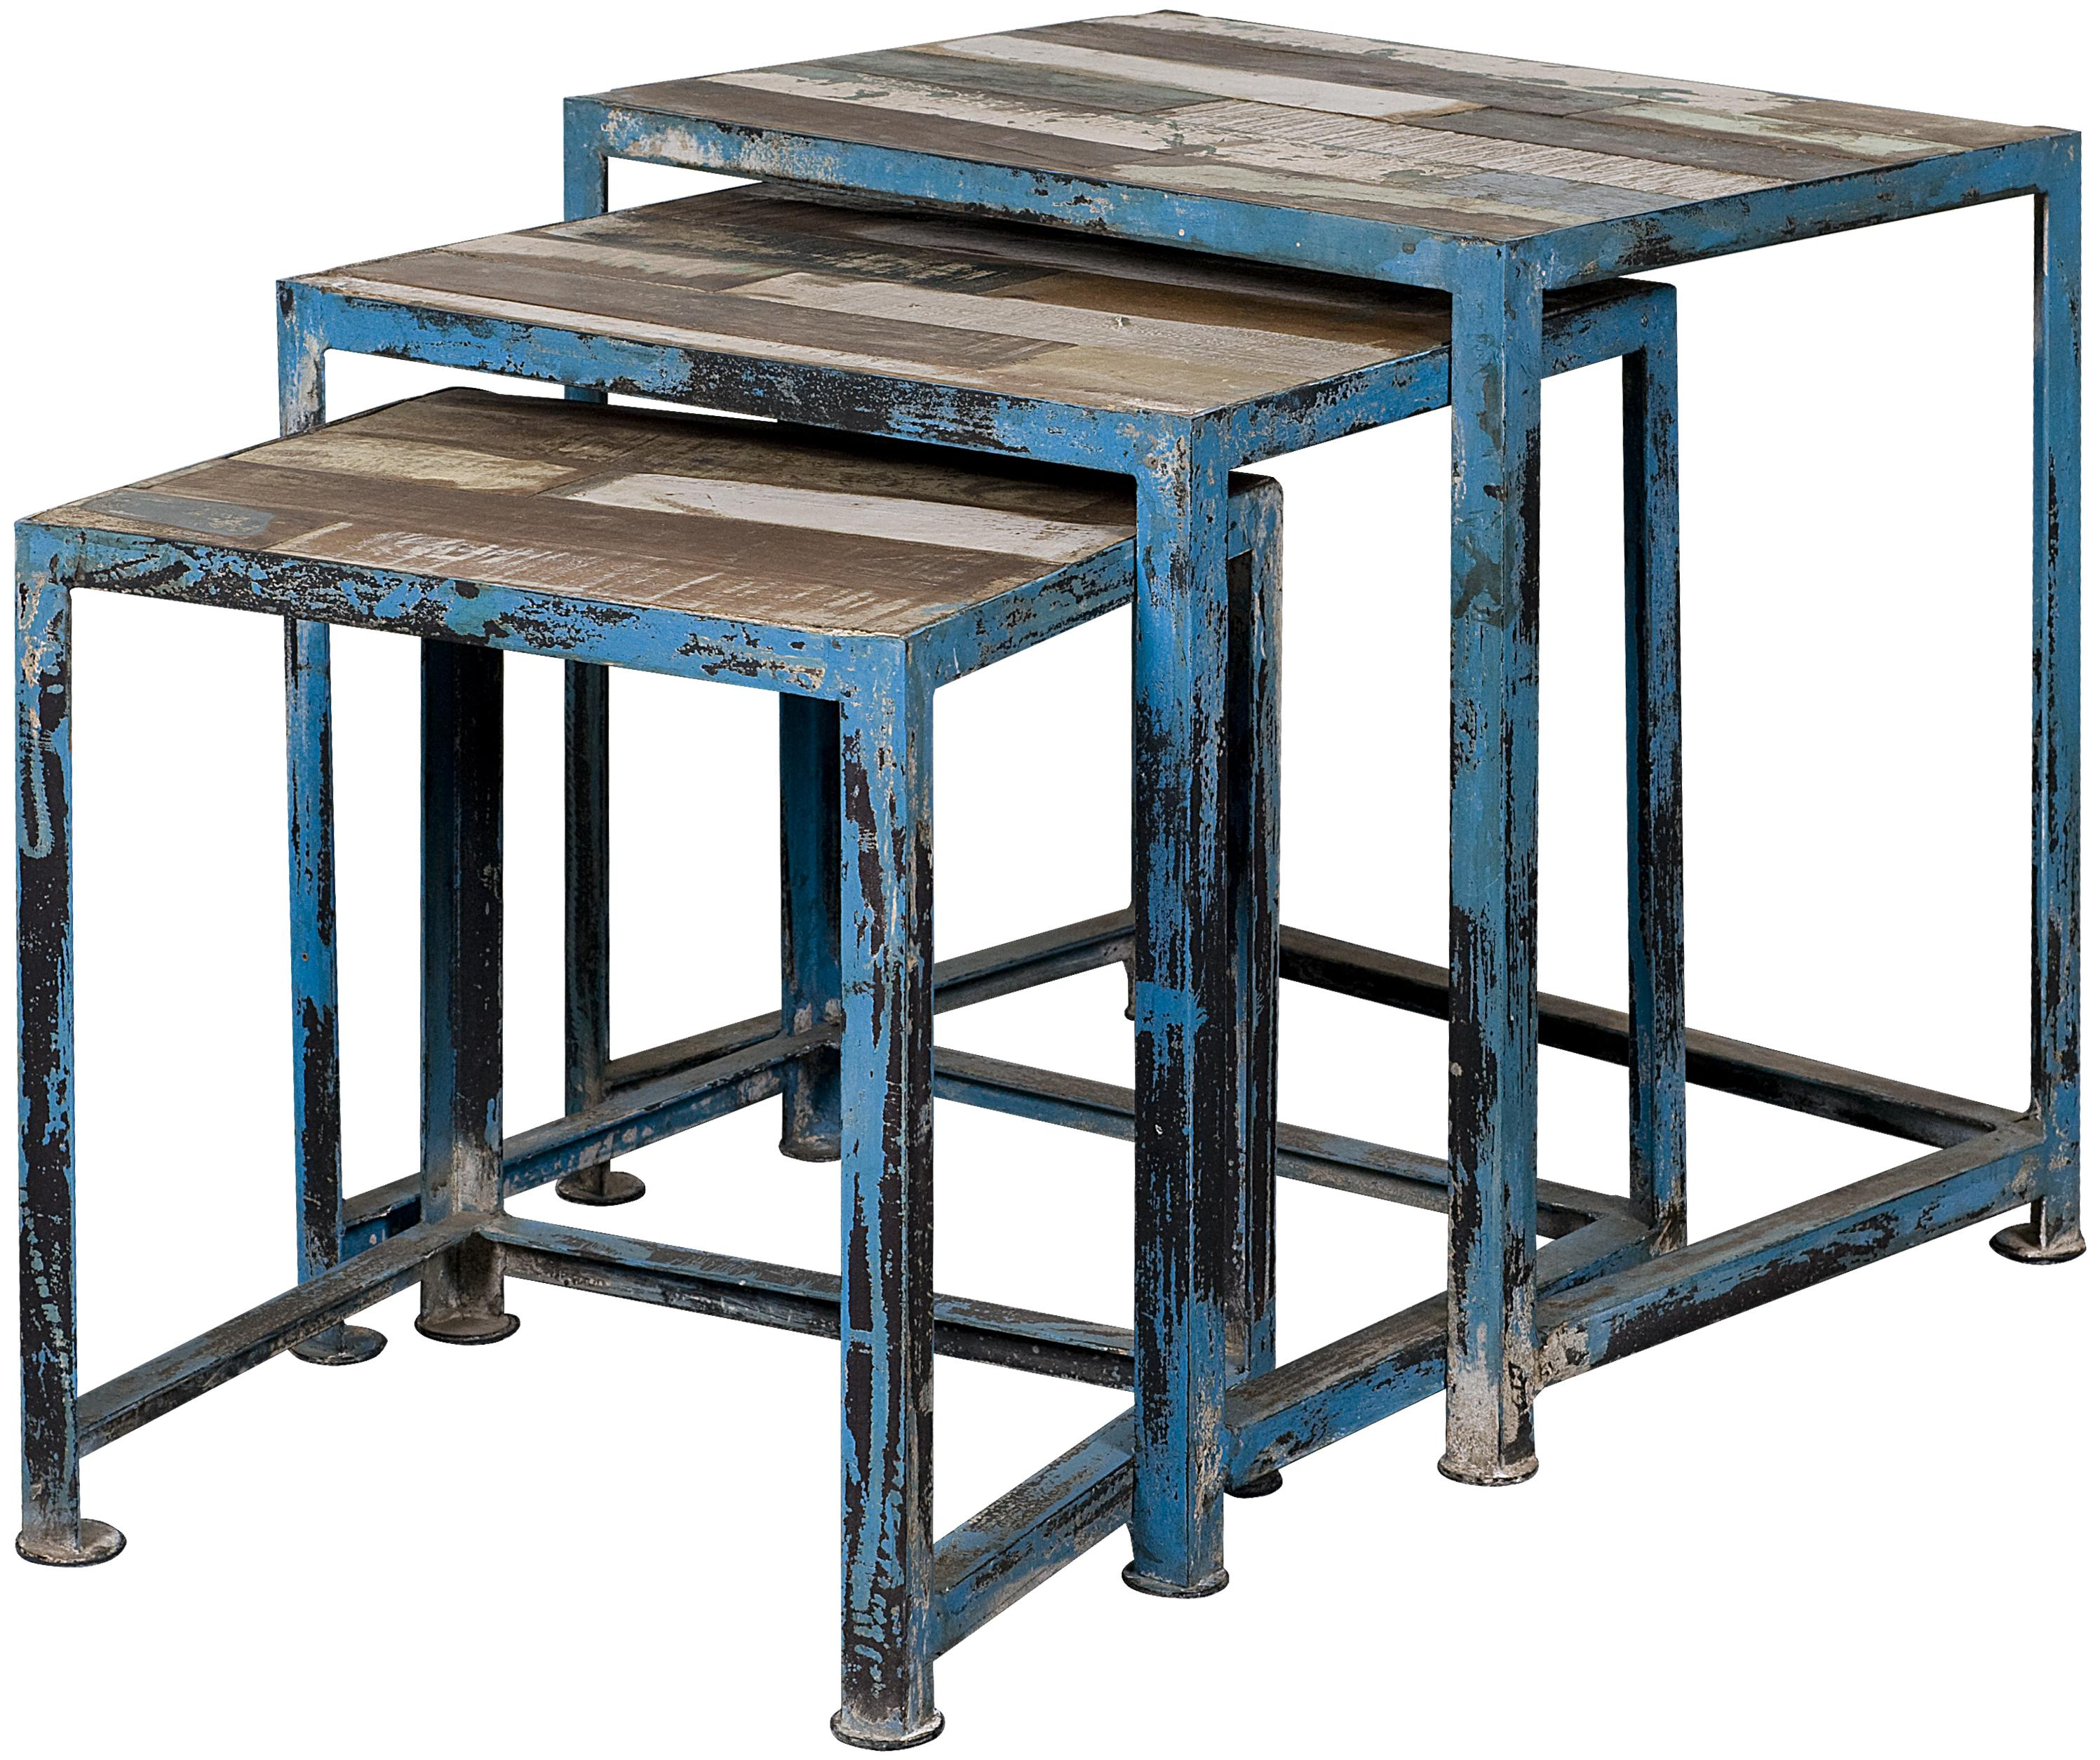 three reclaimed wood iron nesting tables with distressed multi products coast imports color occasional accents accent table groups finish best home decor items entry ideas outdoor